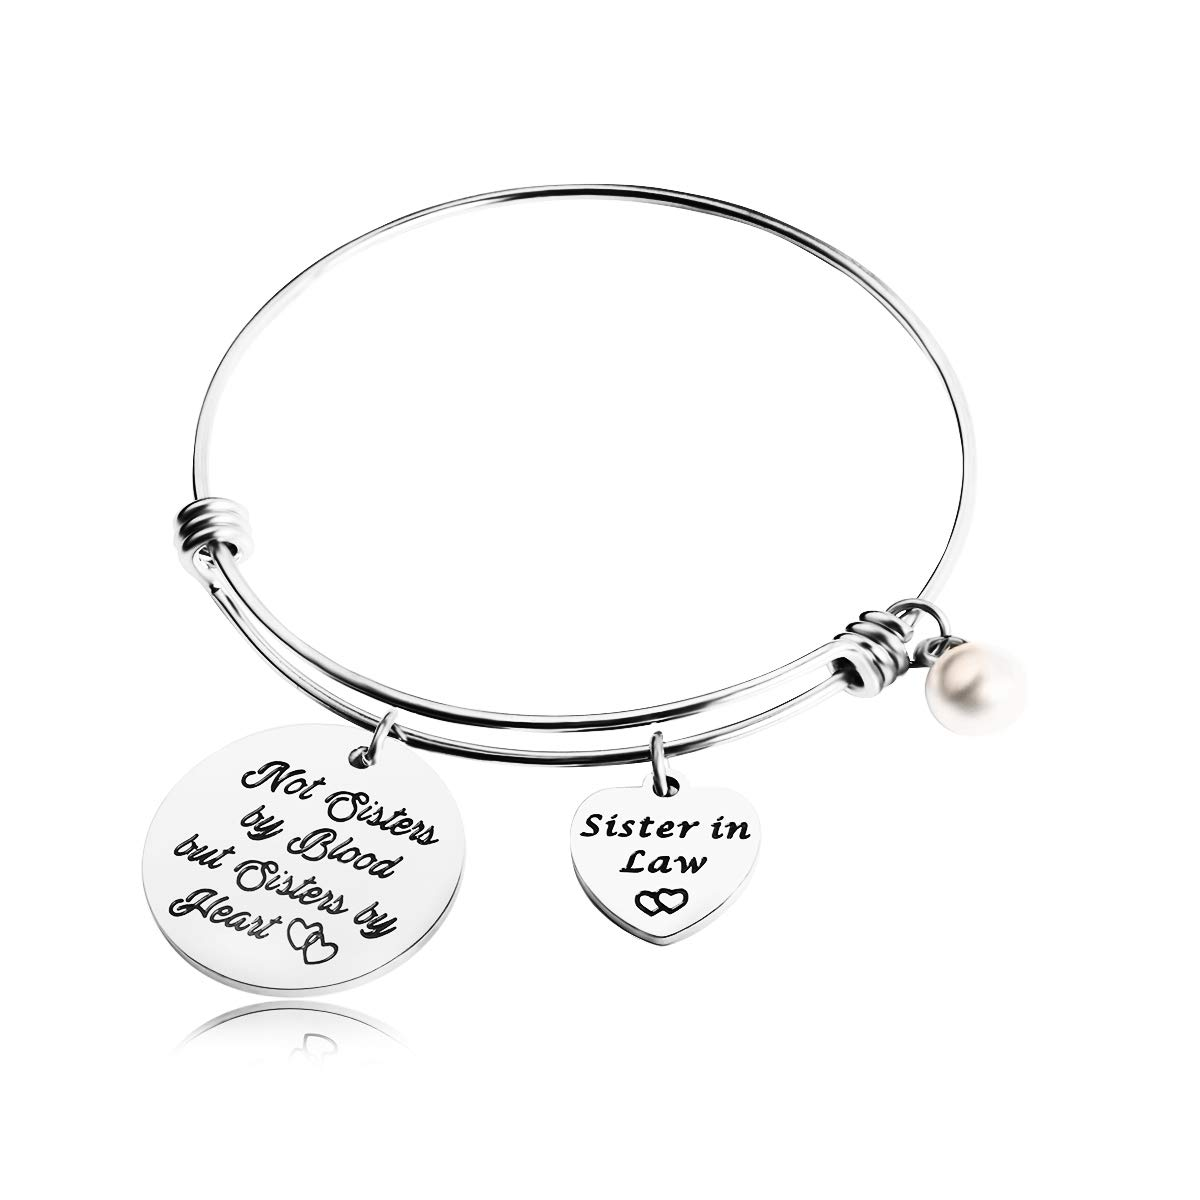 REEBOOO Sister in Law Gift,Wedding Gift for Sister of The Groom,When I Married Your Brother I Gained A Sister Charm Bangle Bracelet (Sister in Law Bracelet)